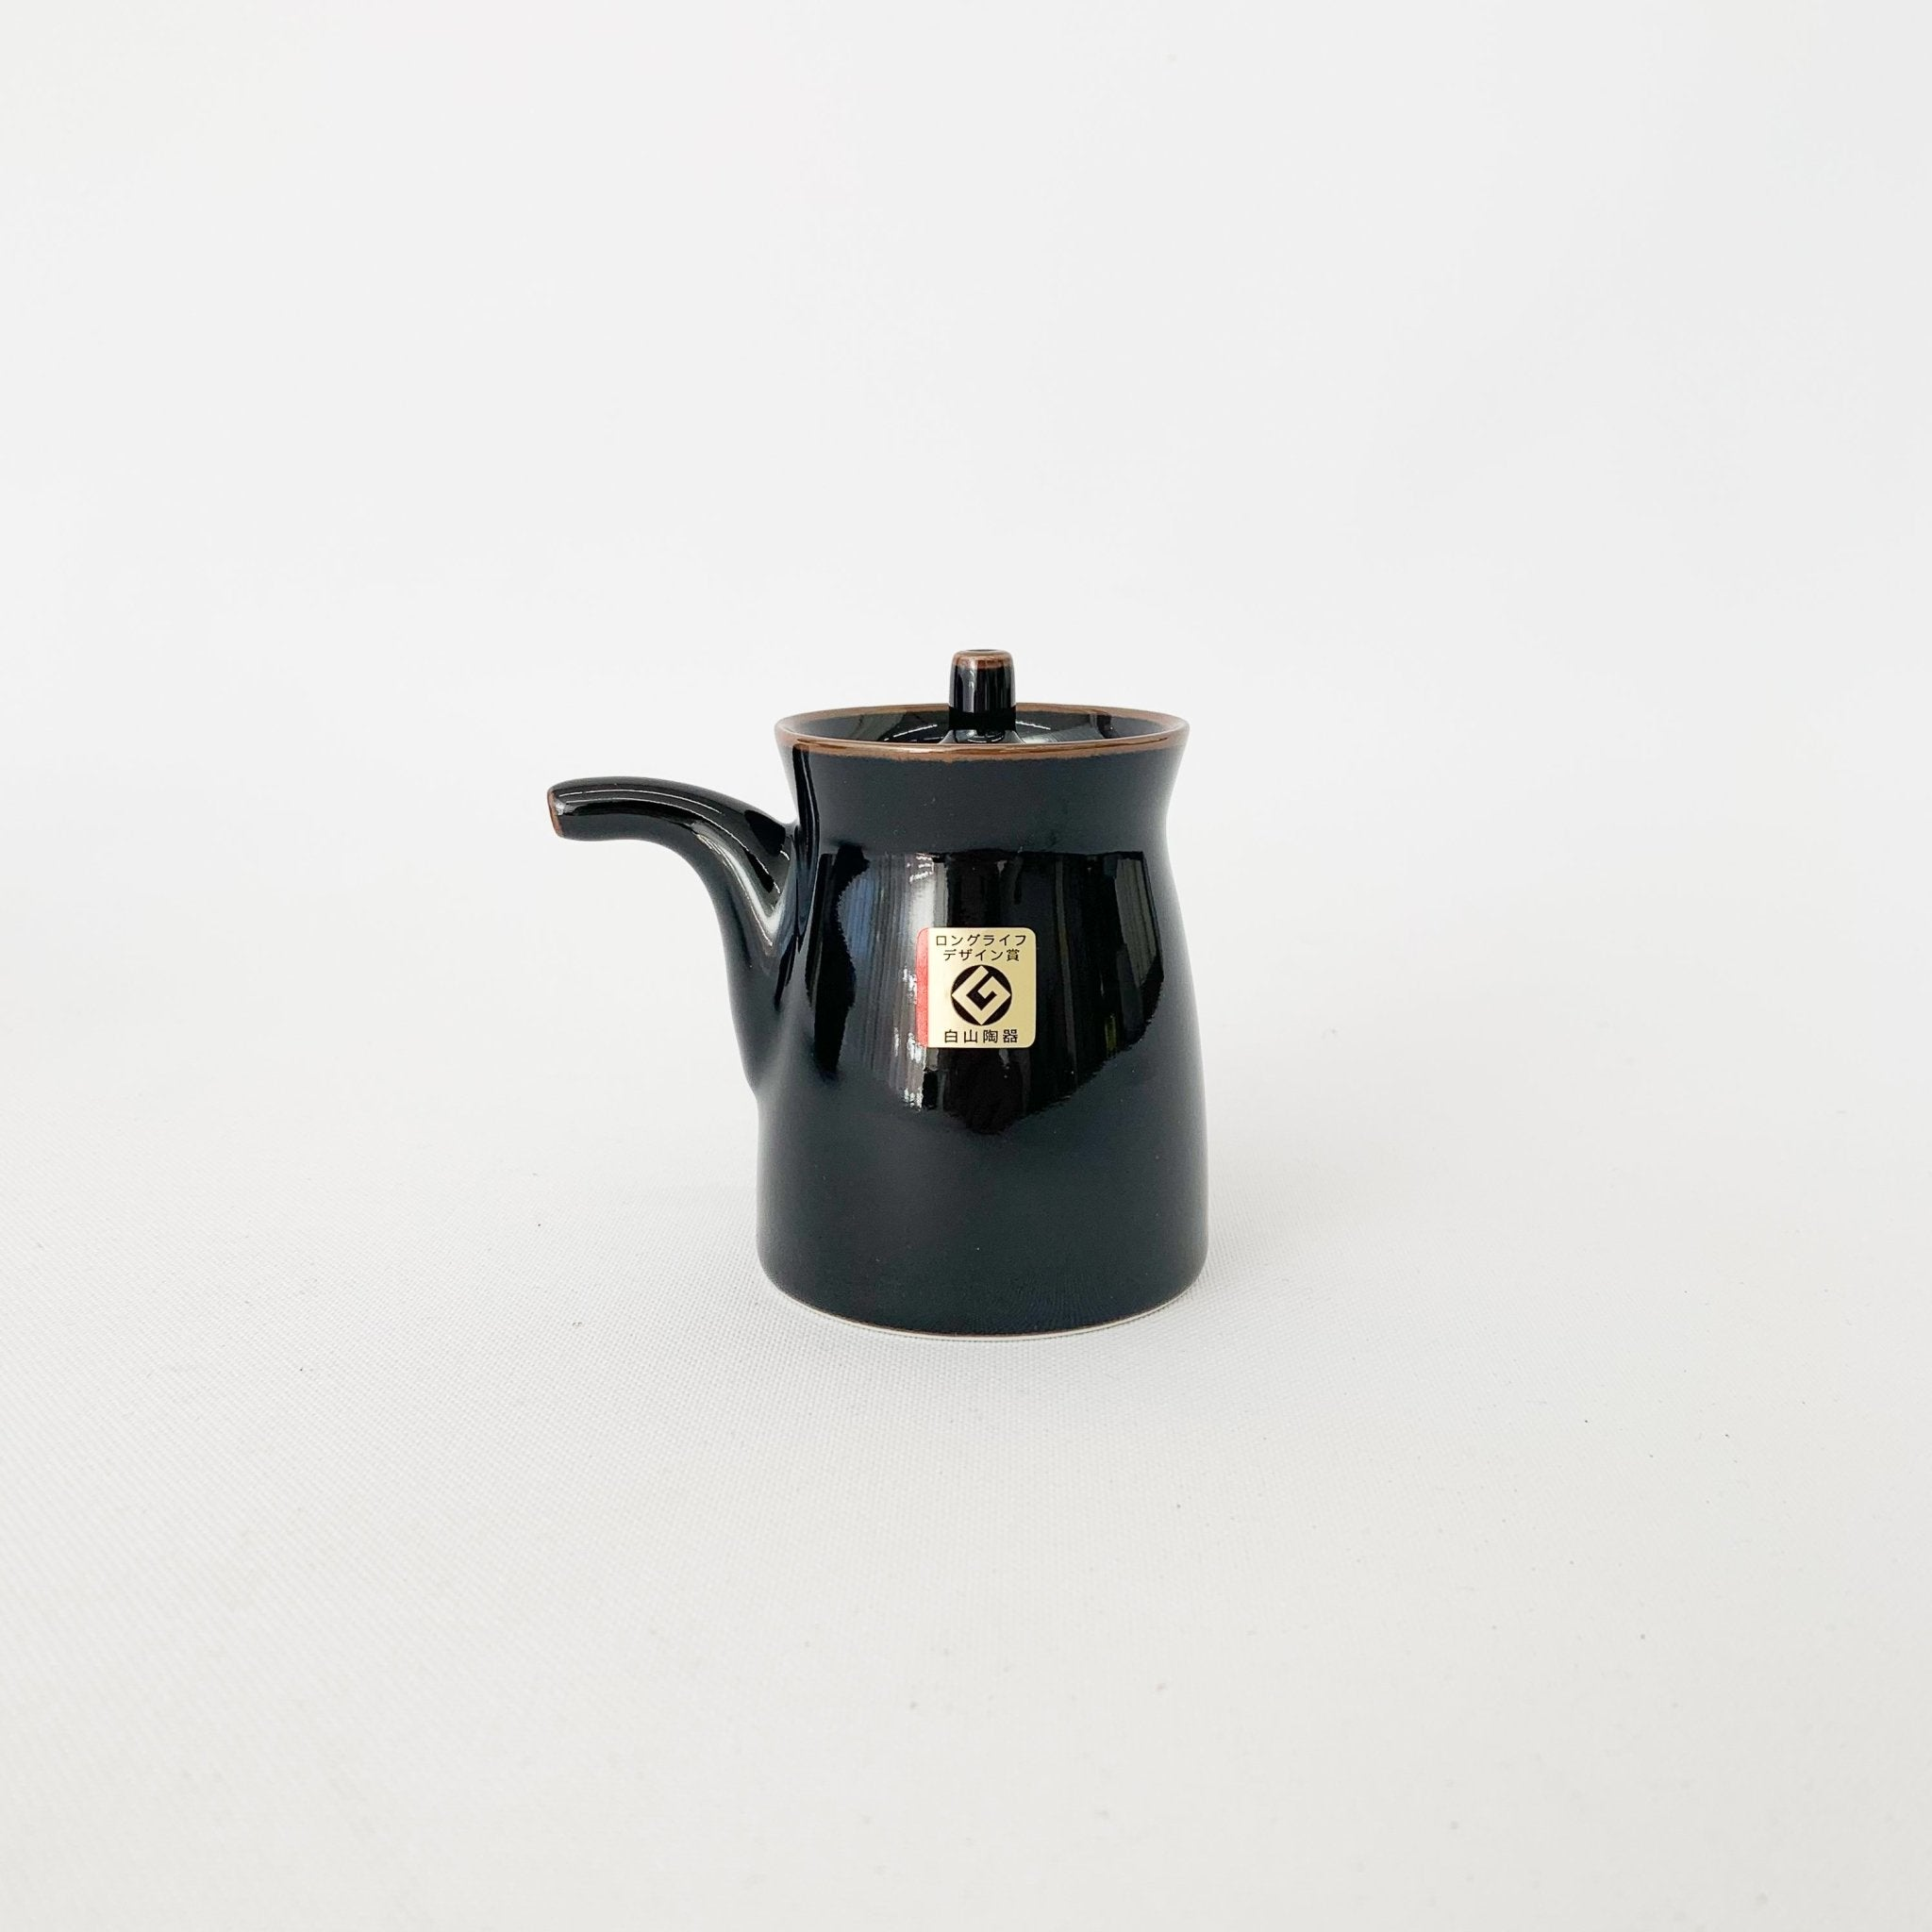 Masahiro Mori G-Mark Soy Sauce Pitcher - tortoise general store